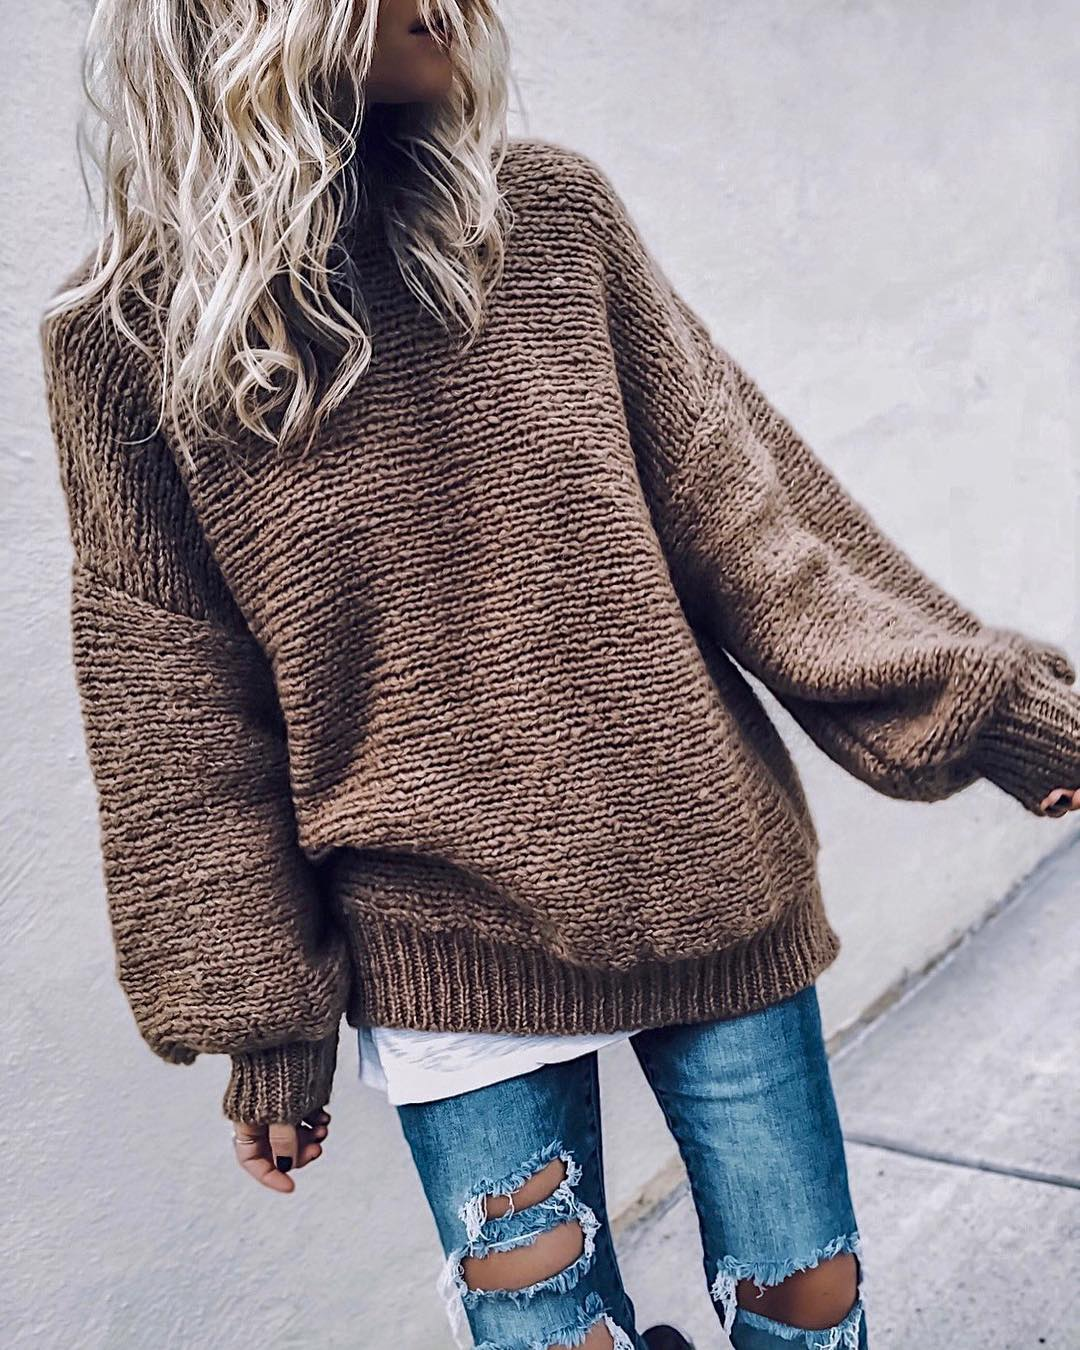 great outfit idea to copy this fall / brown knit sweater + white top + ripped jeans